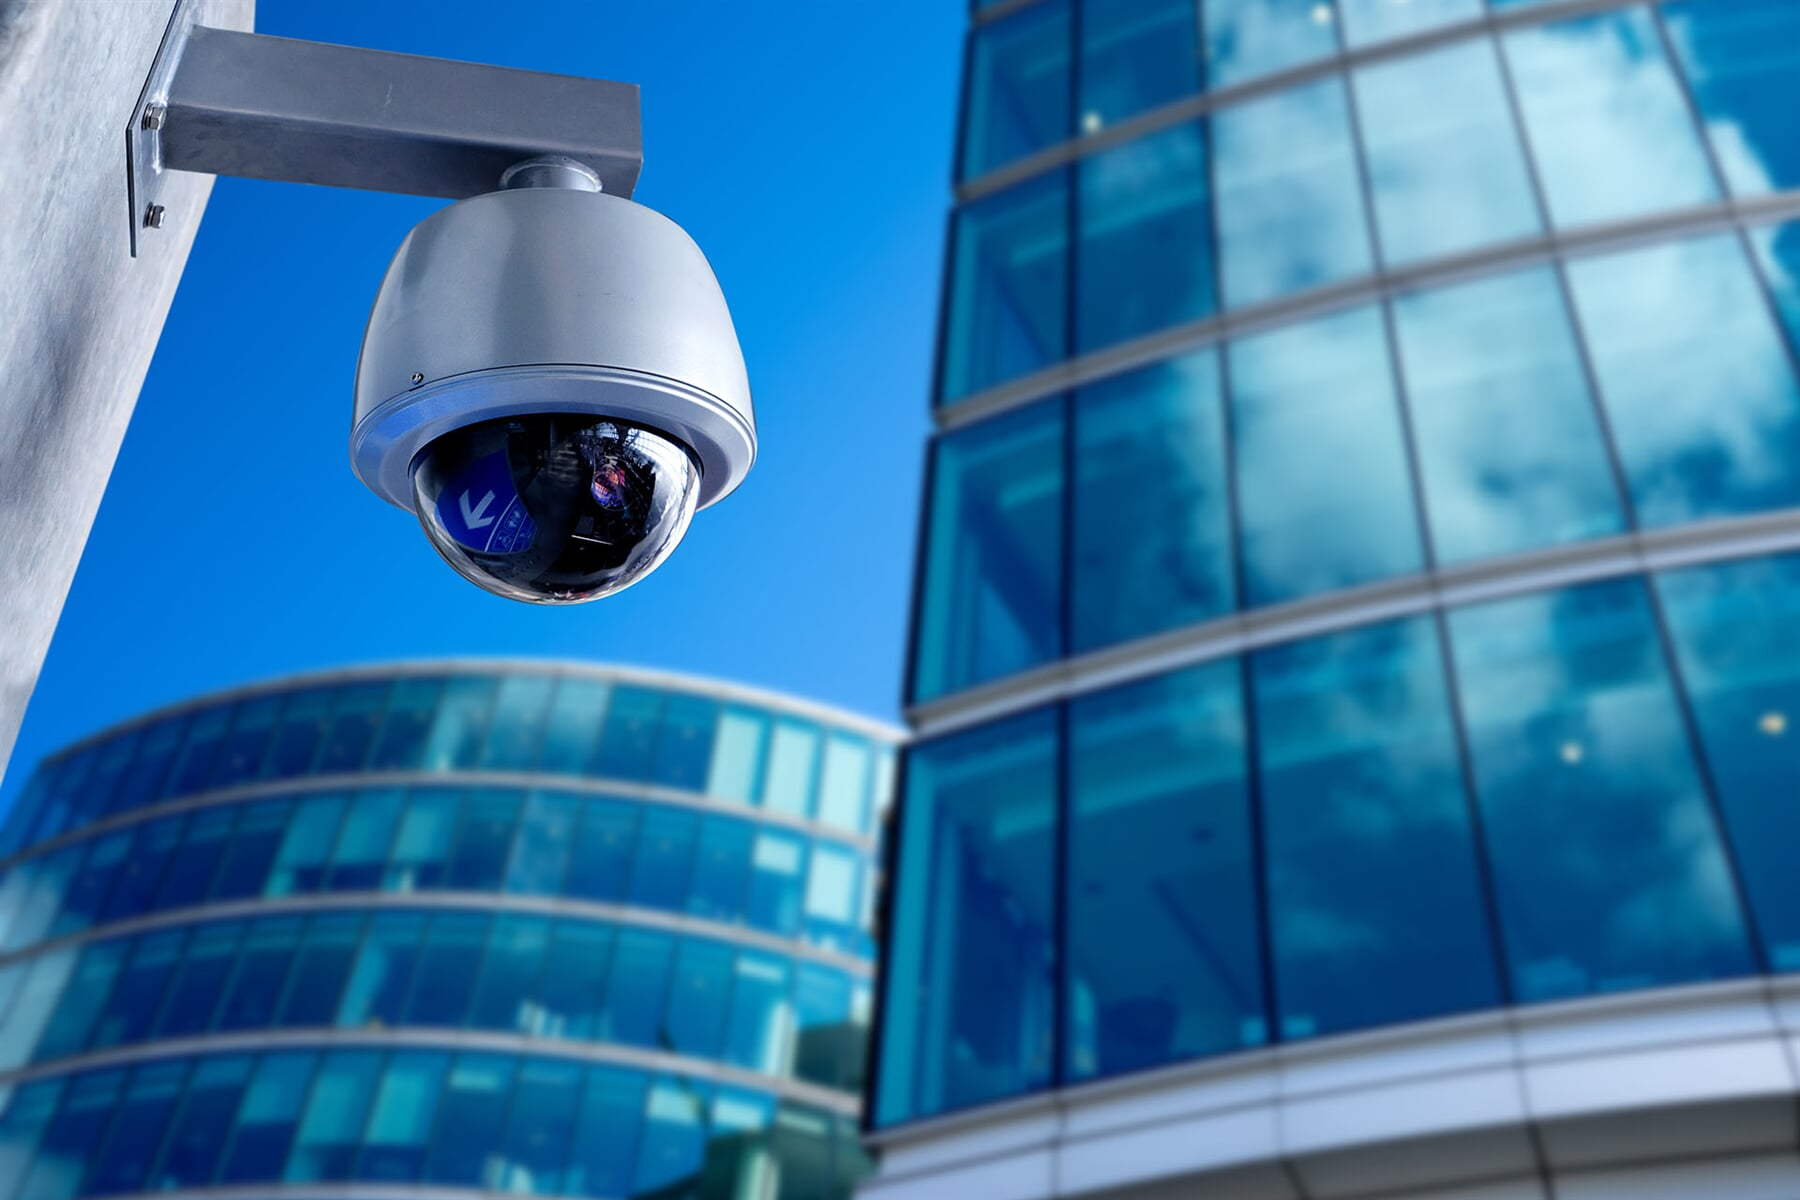 Exterior-security-camera-in-front-of-modern-buildings-466997264_5524x3683